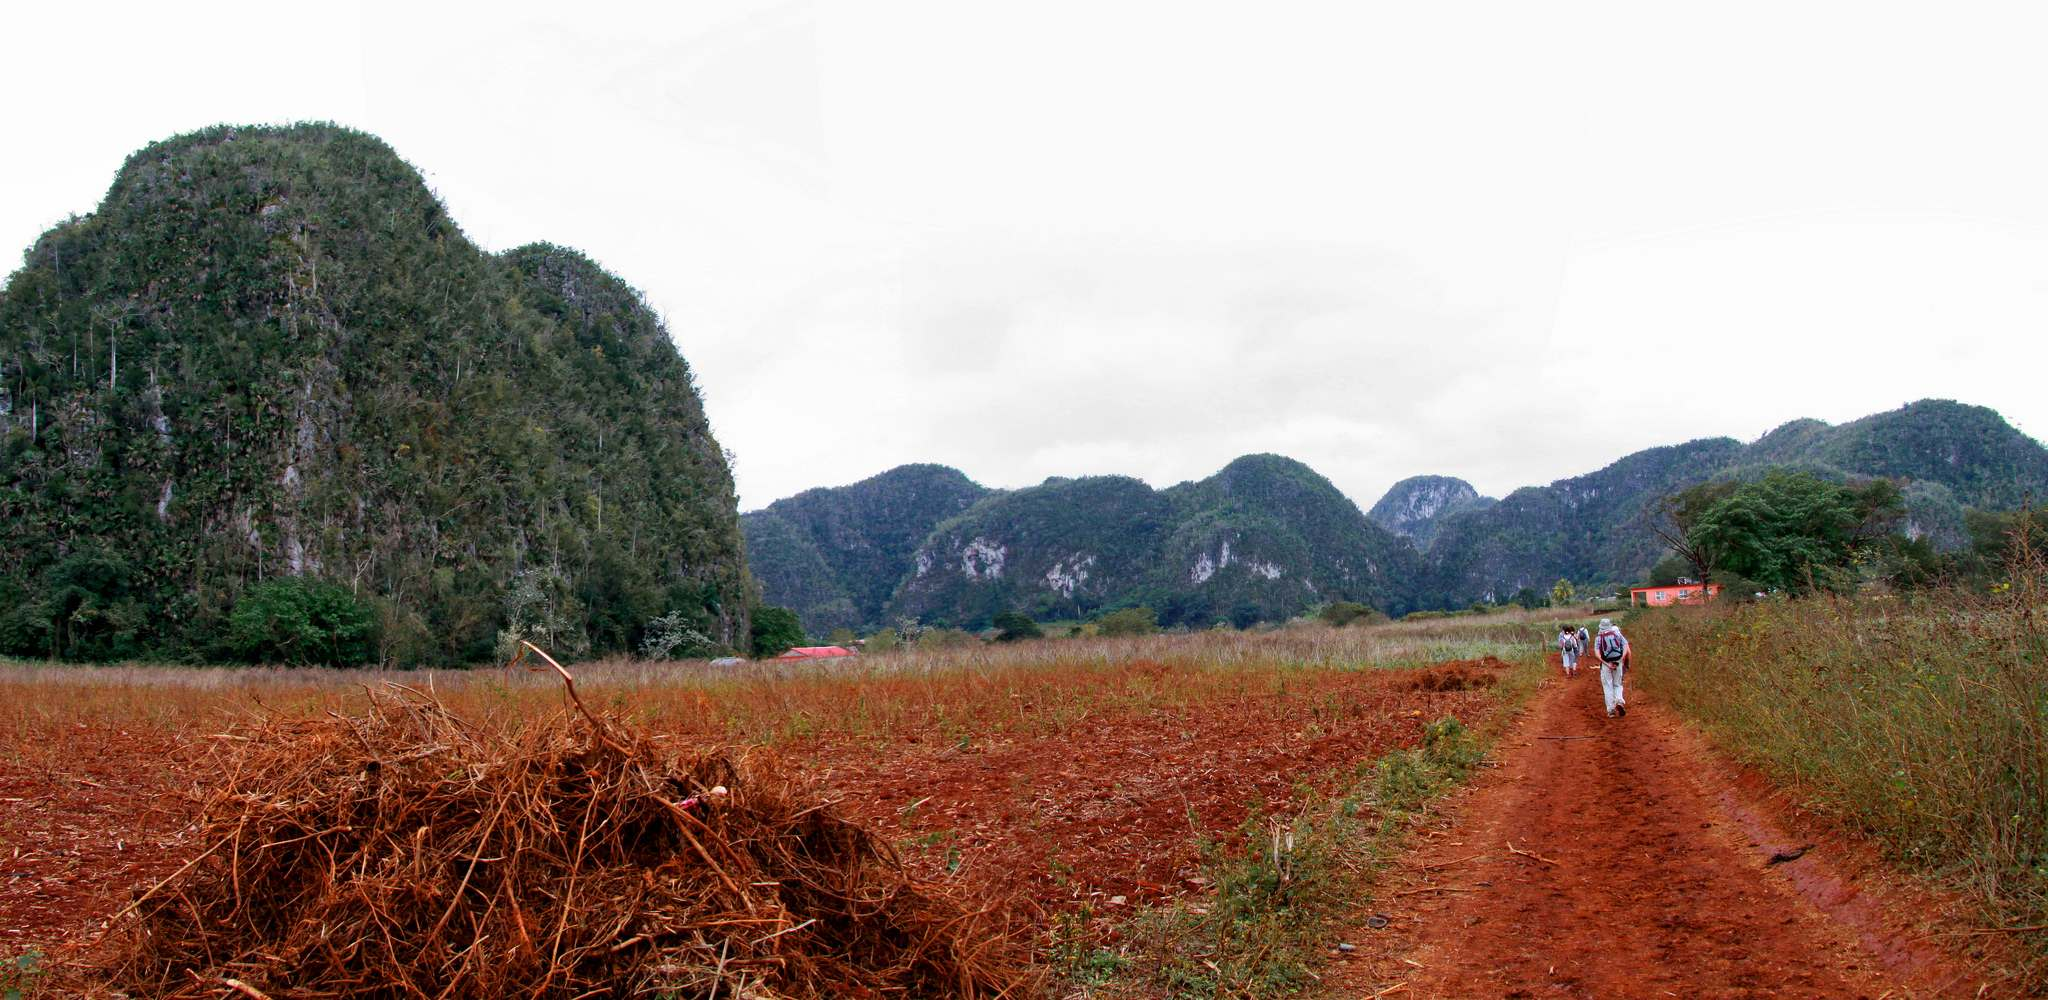 vinales valley10 Vinales Valley   UNESCO World Heritage Site